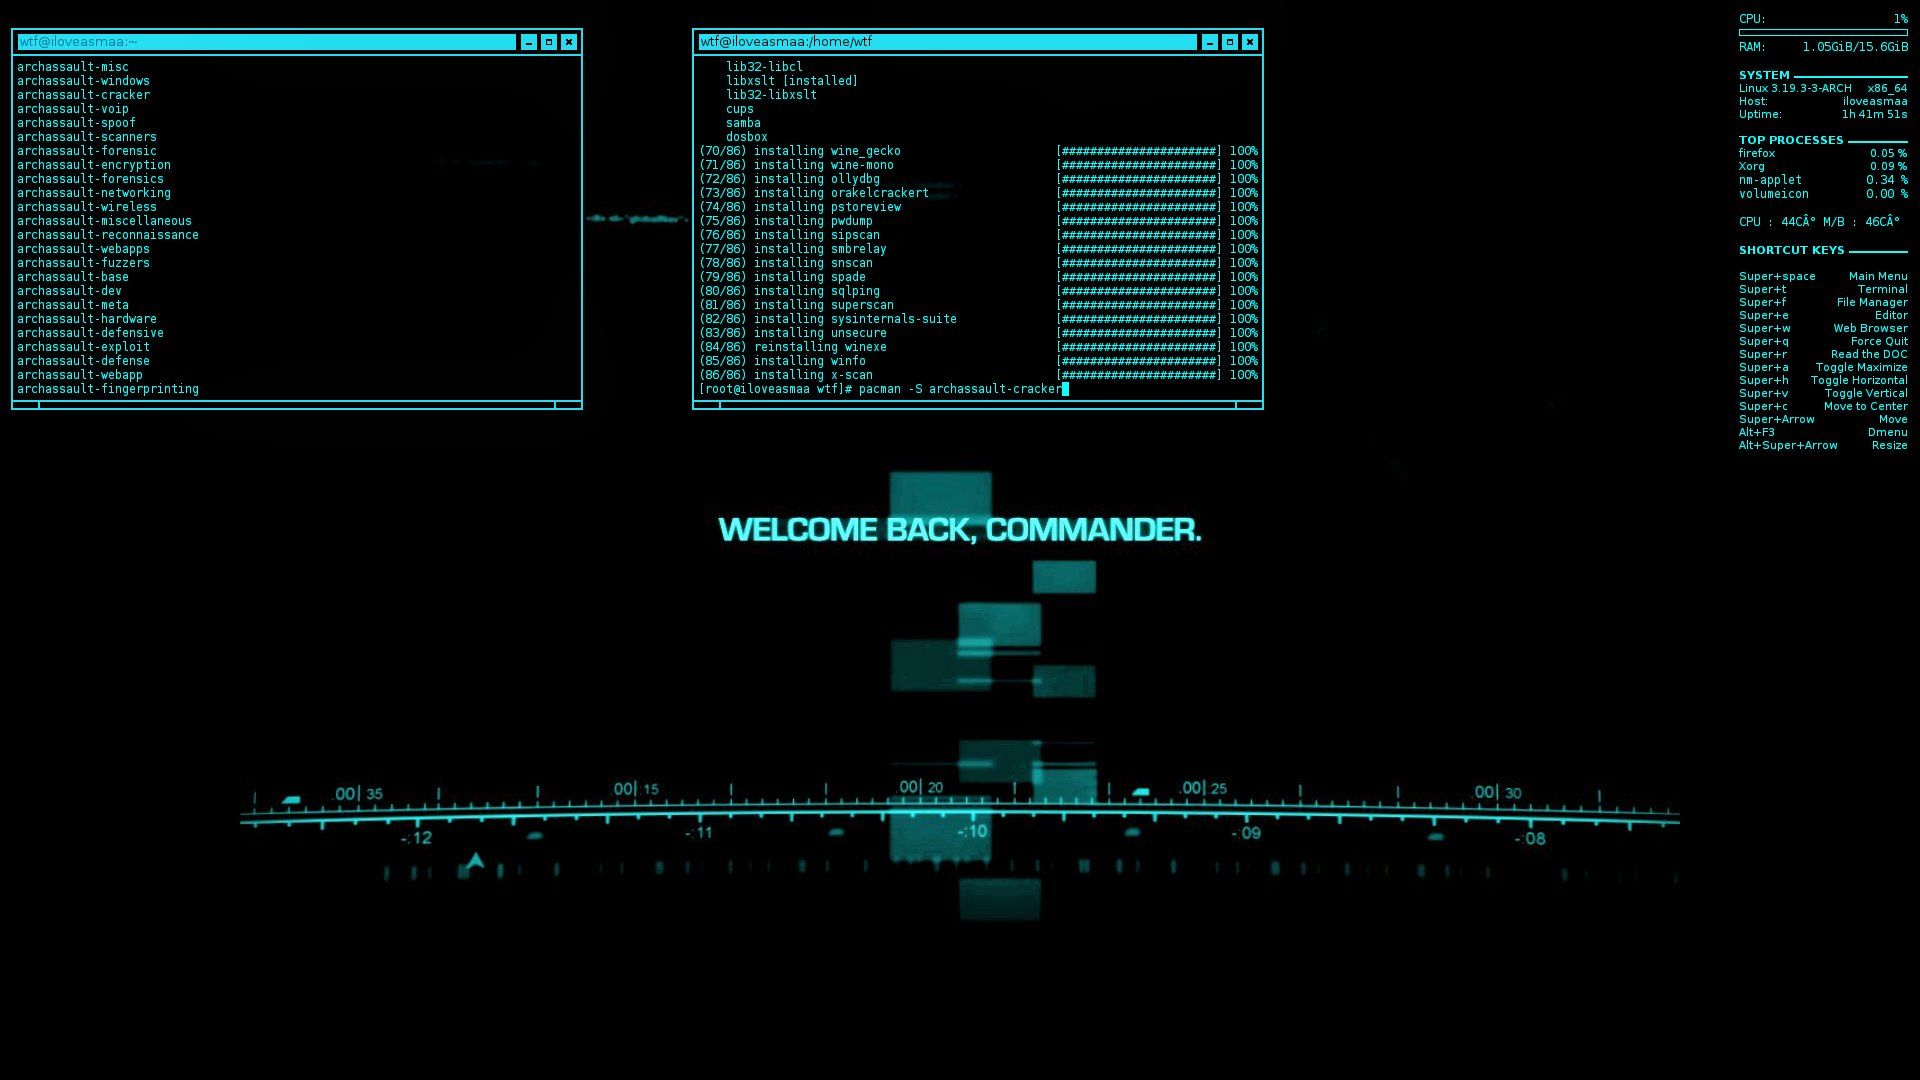 76 Hacker Wallpaper On Wallpapersafari